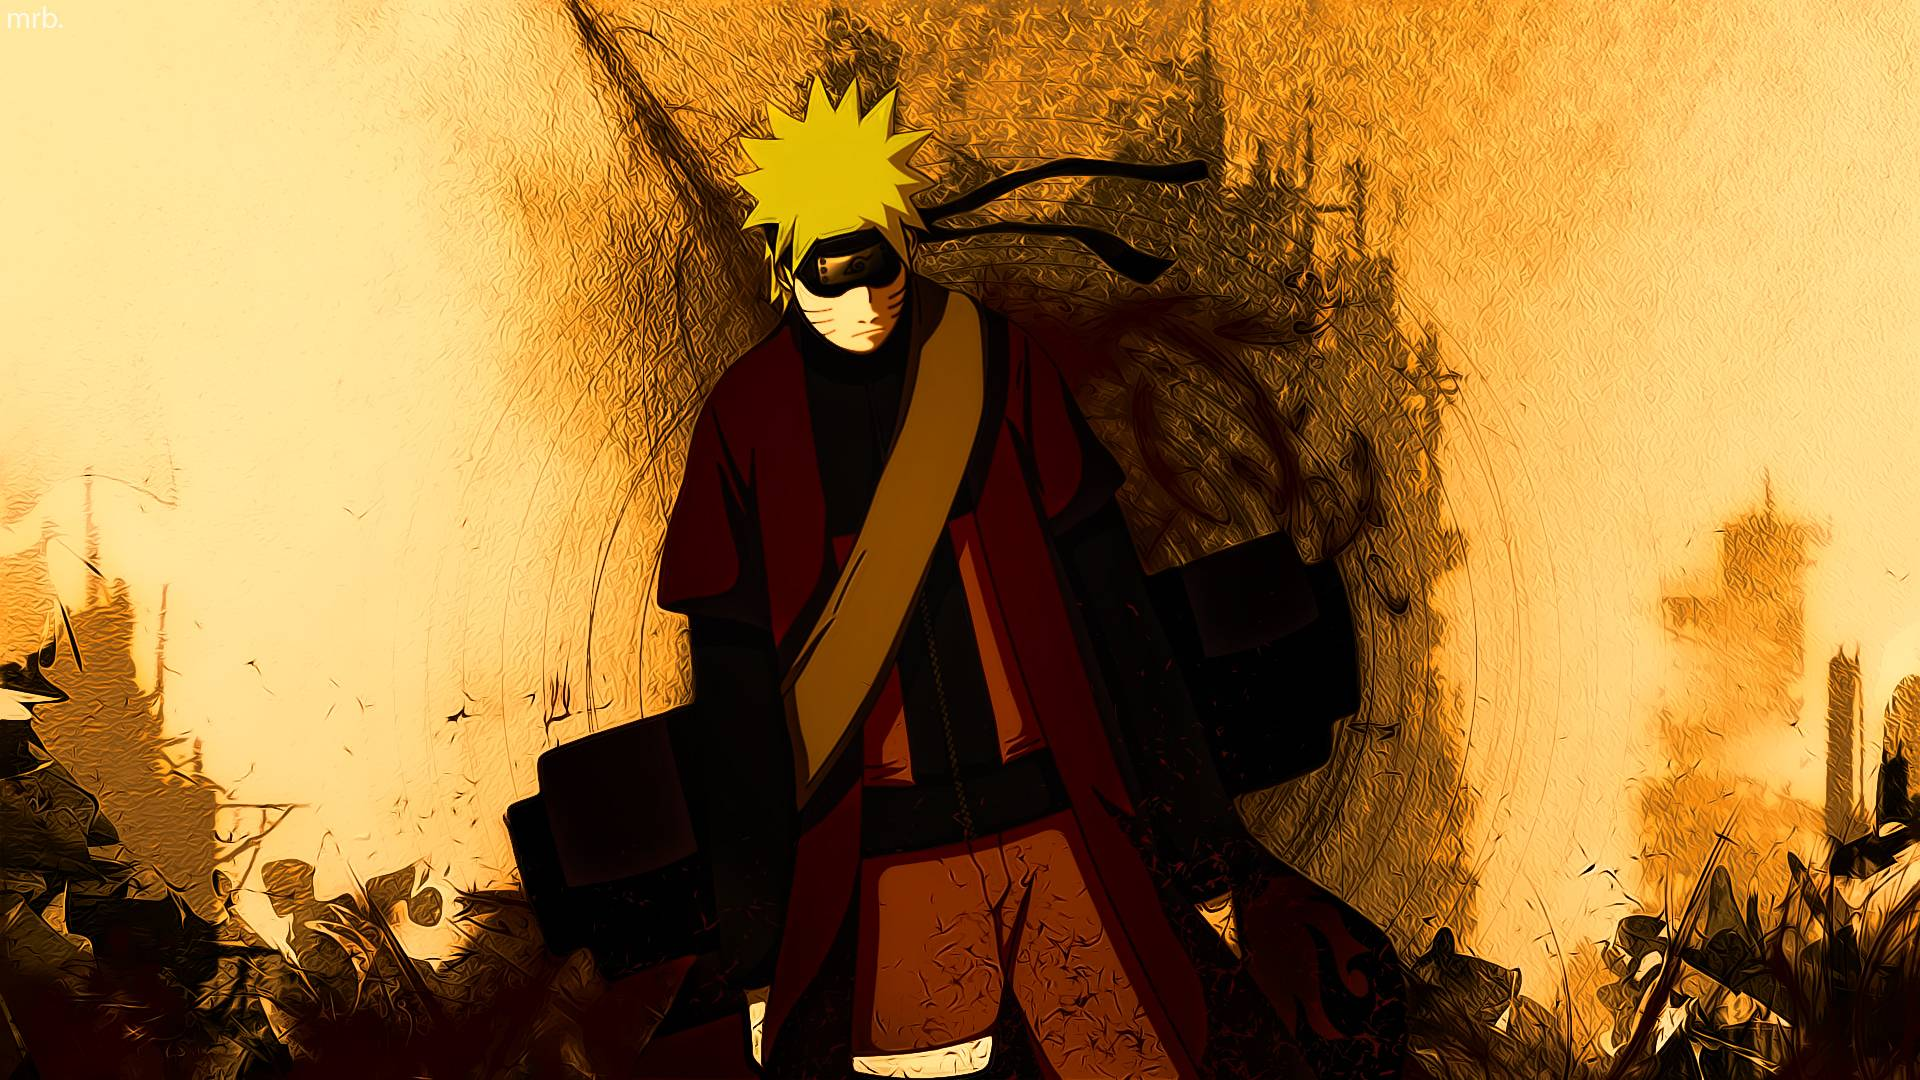 Naruto Wallpaper HD 19 Backgrounds | Wallruru.